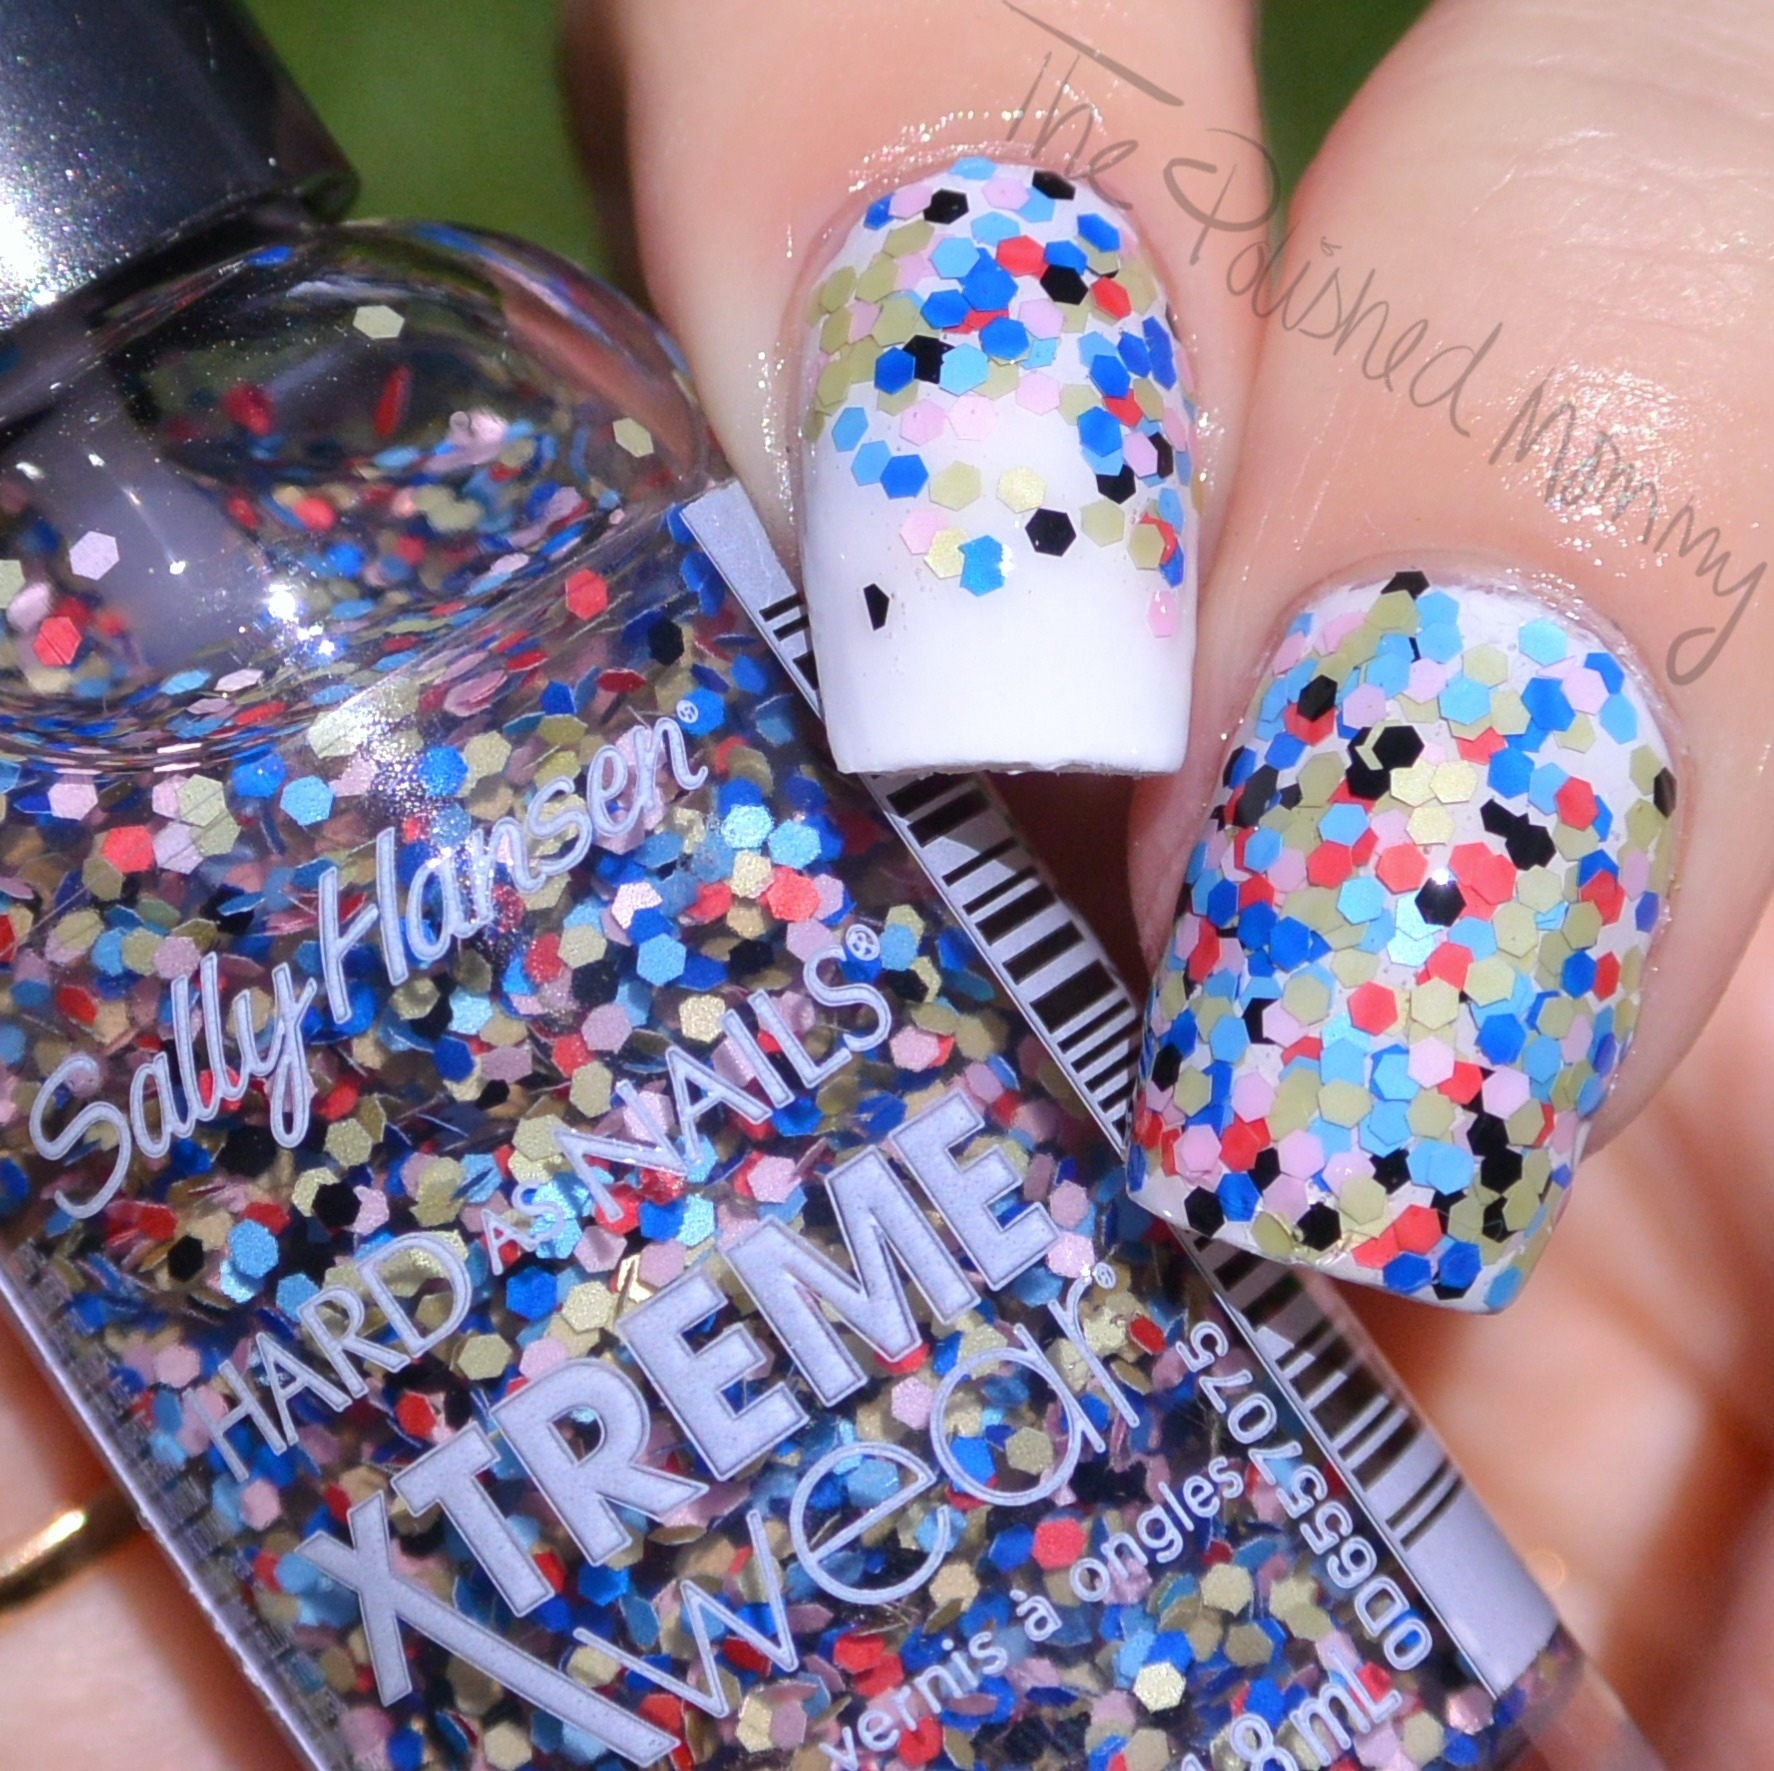 Sally Hansen Xtreme Wear Rio Glitters The Polished Mommy